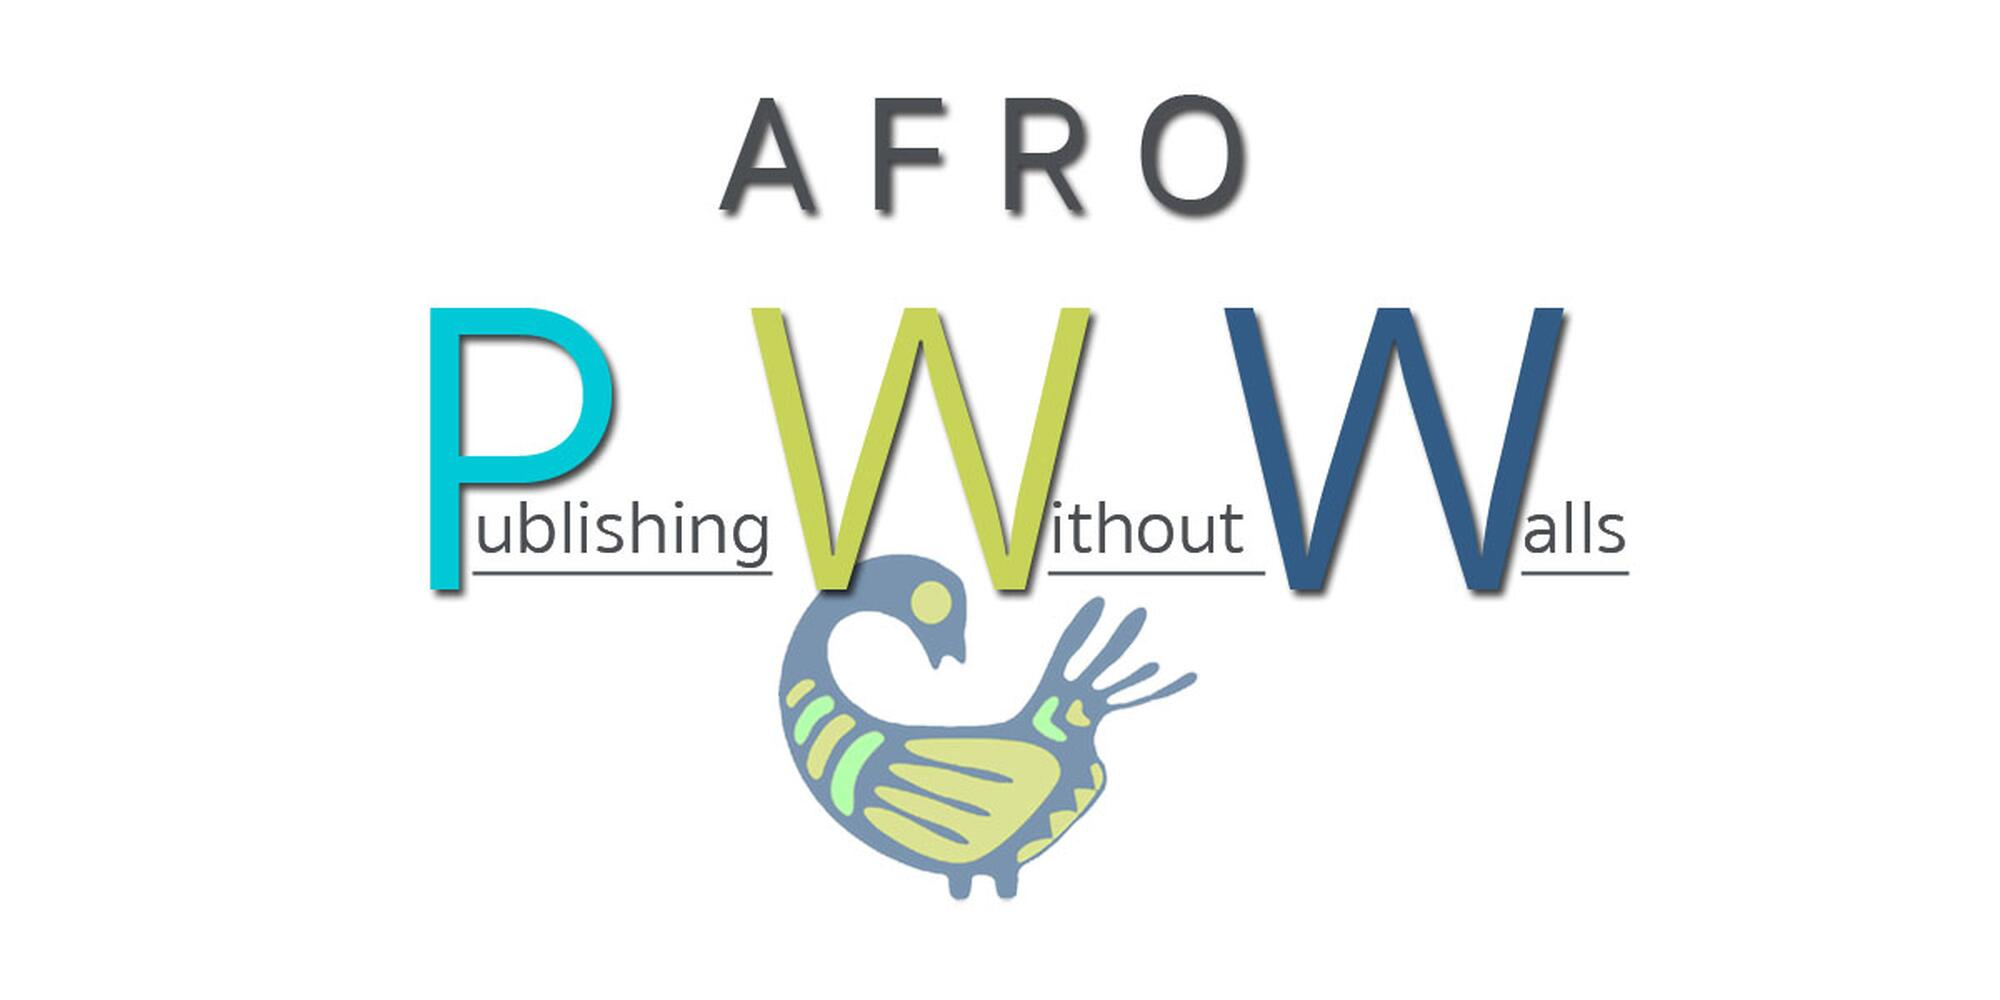 AFRO-PWW words with Sankofa symbol in light and dark blues and green